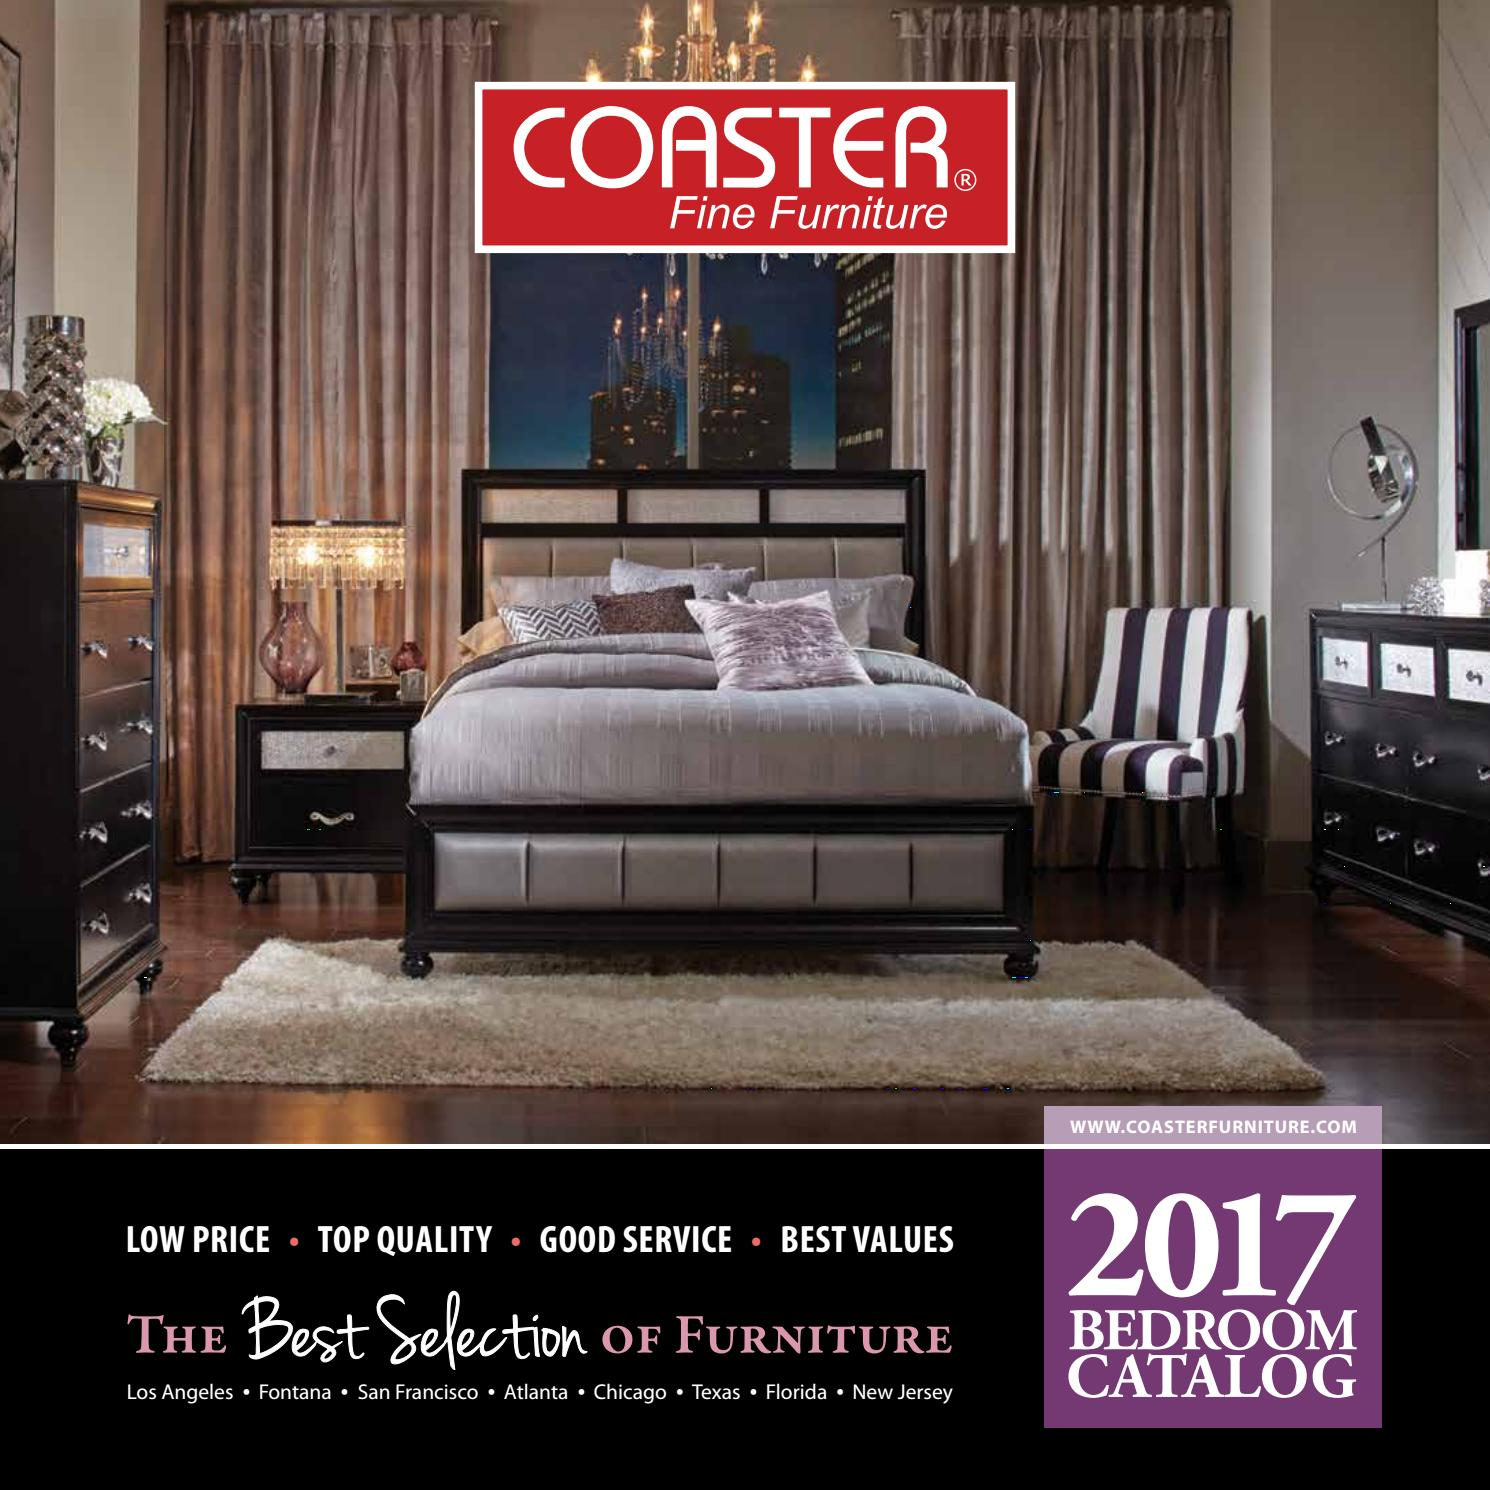 Bedroom Furniture Catalogue 2017 2017 coaster bedroom catalogseaboard bedding and furntiure - issuu